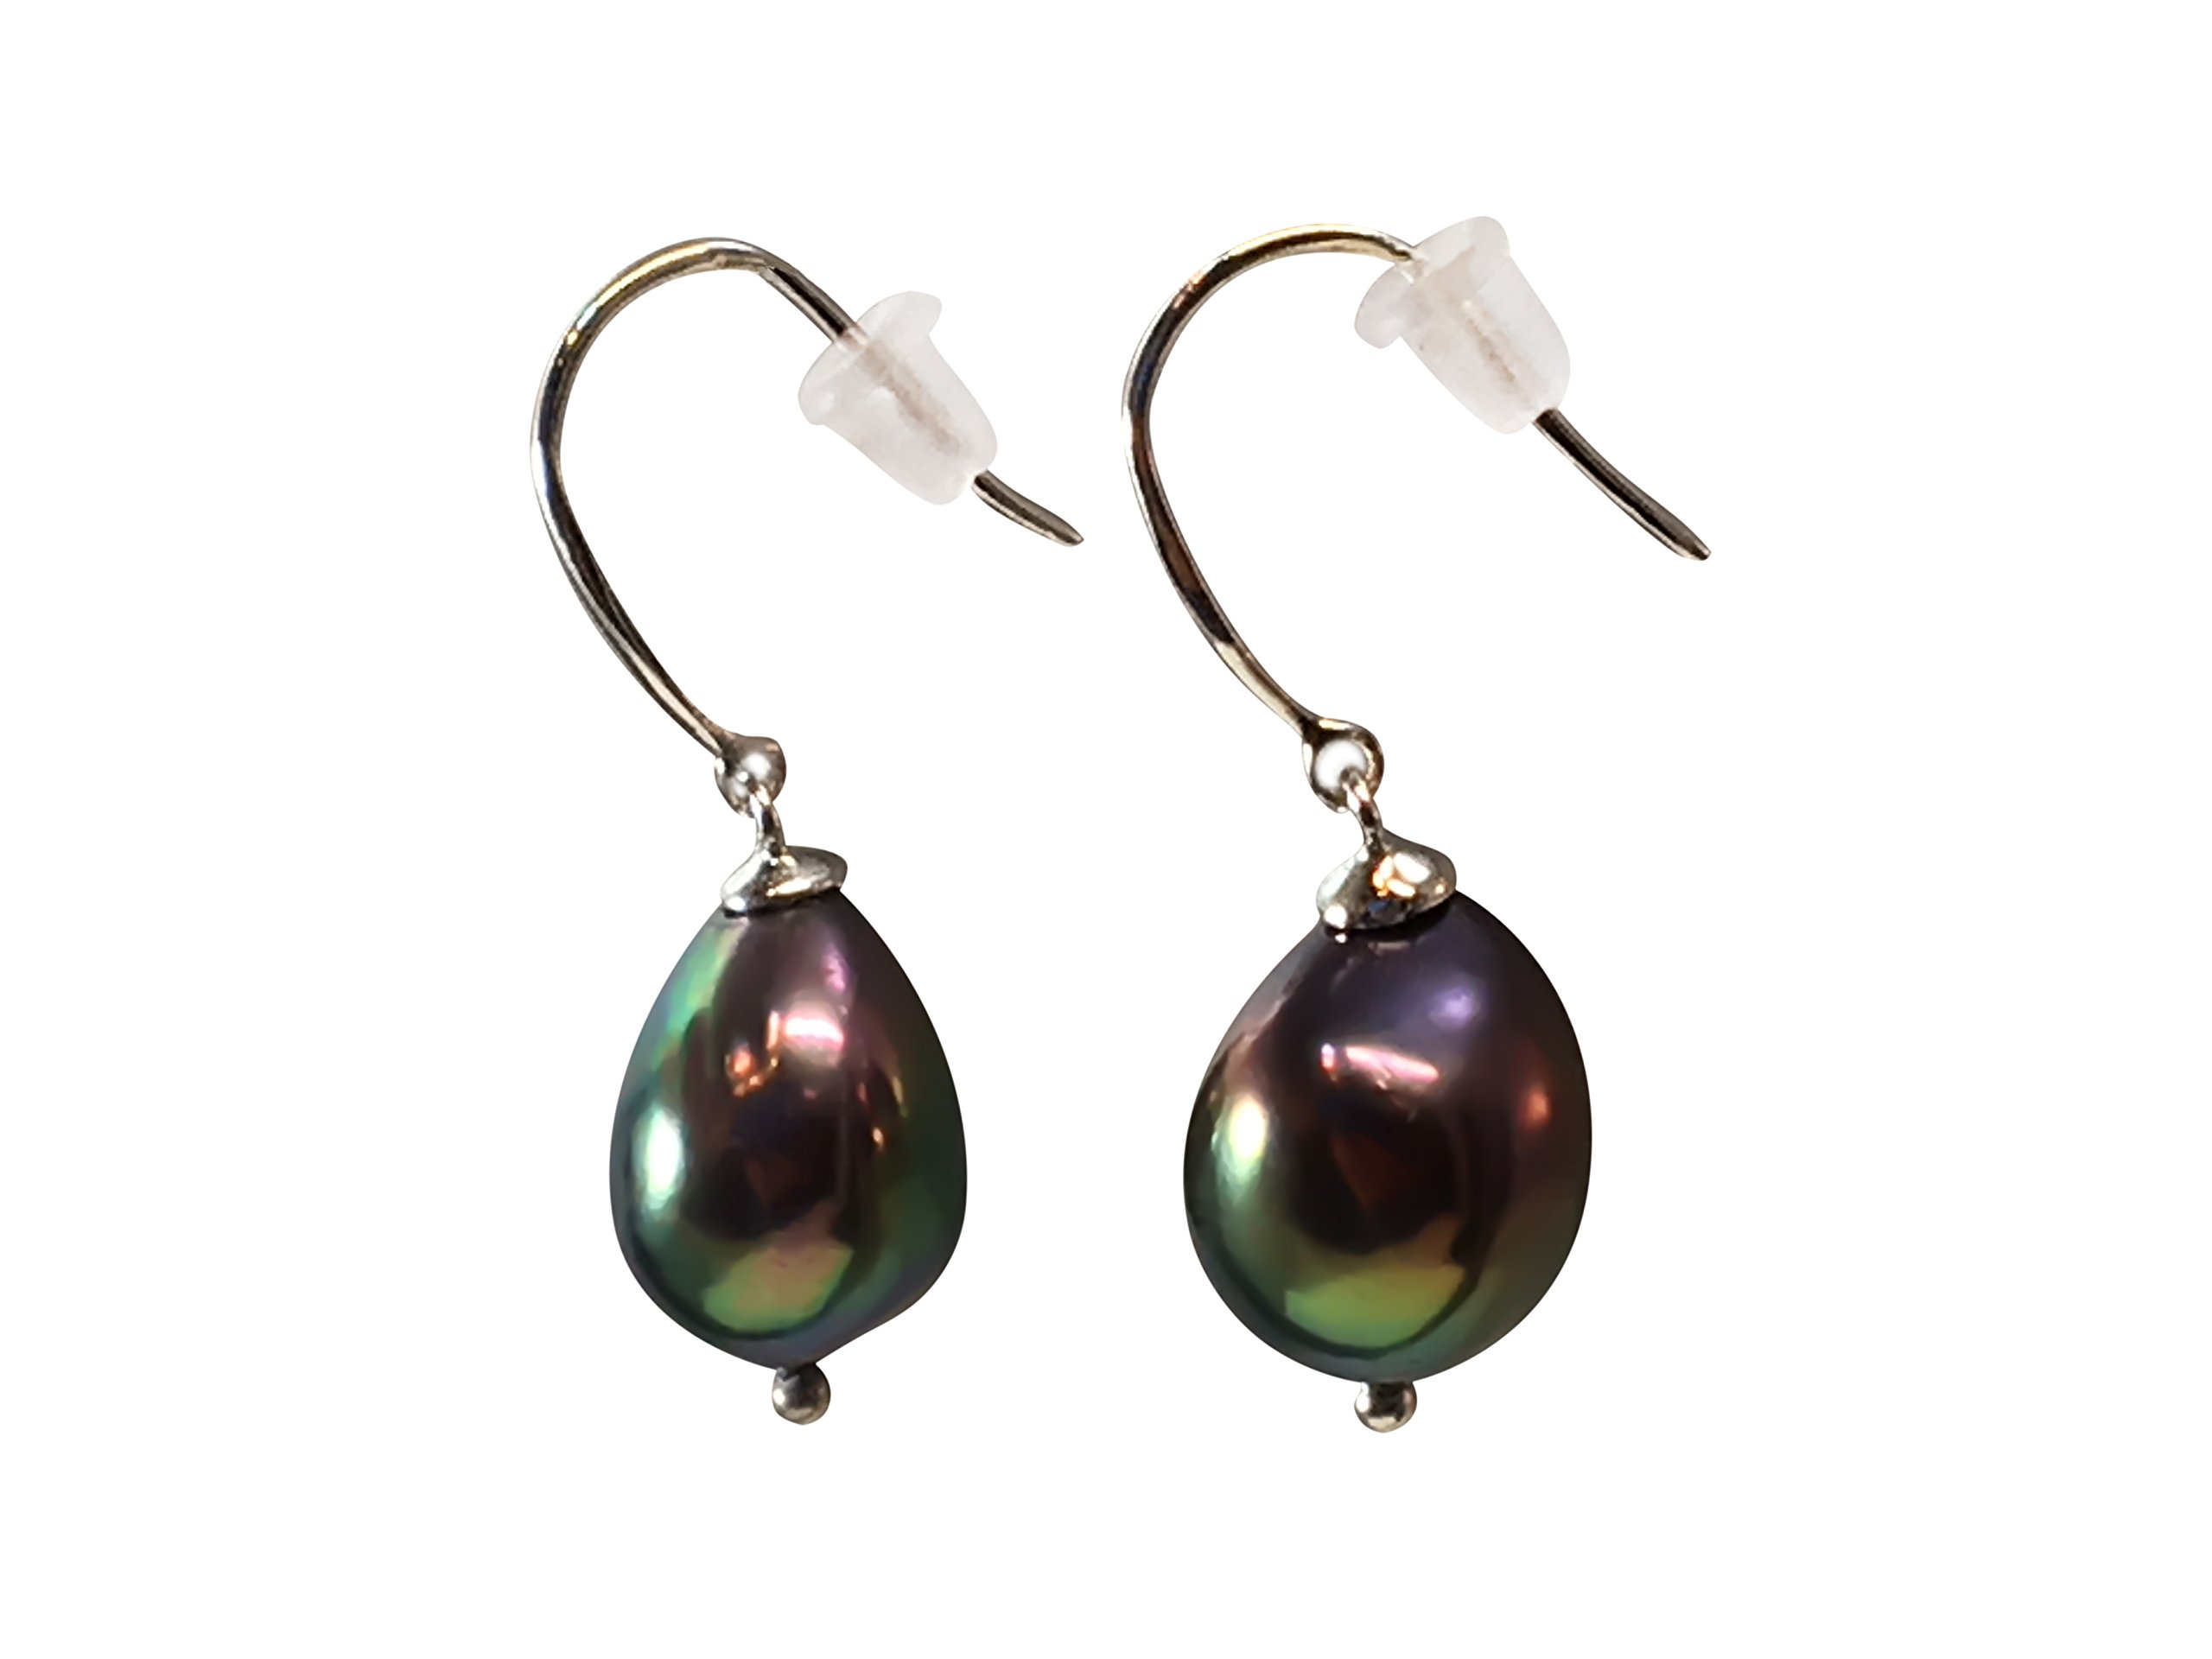 HinsonGayle AAA Handpicked 9-9.5mm Black Baroque Freshwater Cultured Pearl Dangle Earrings Silver